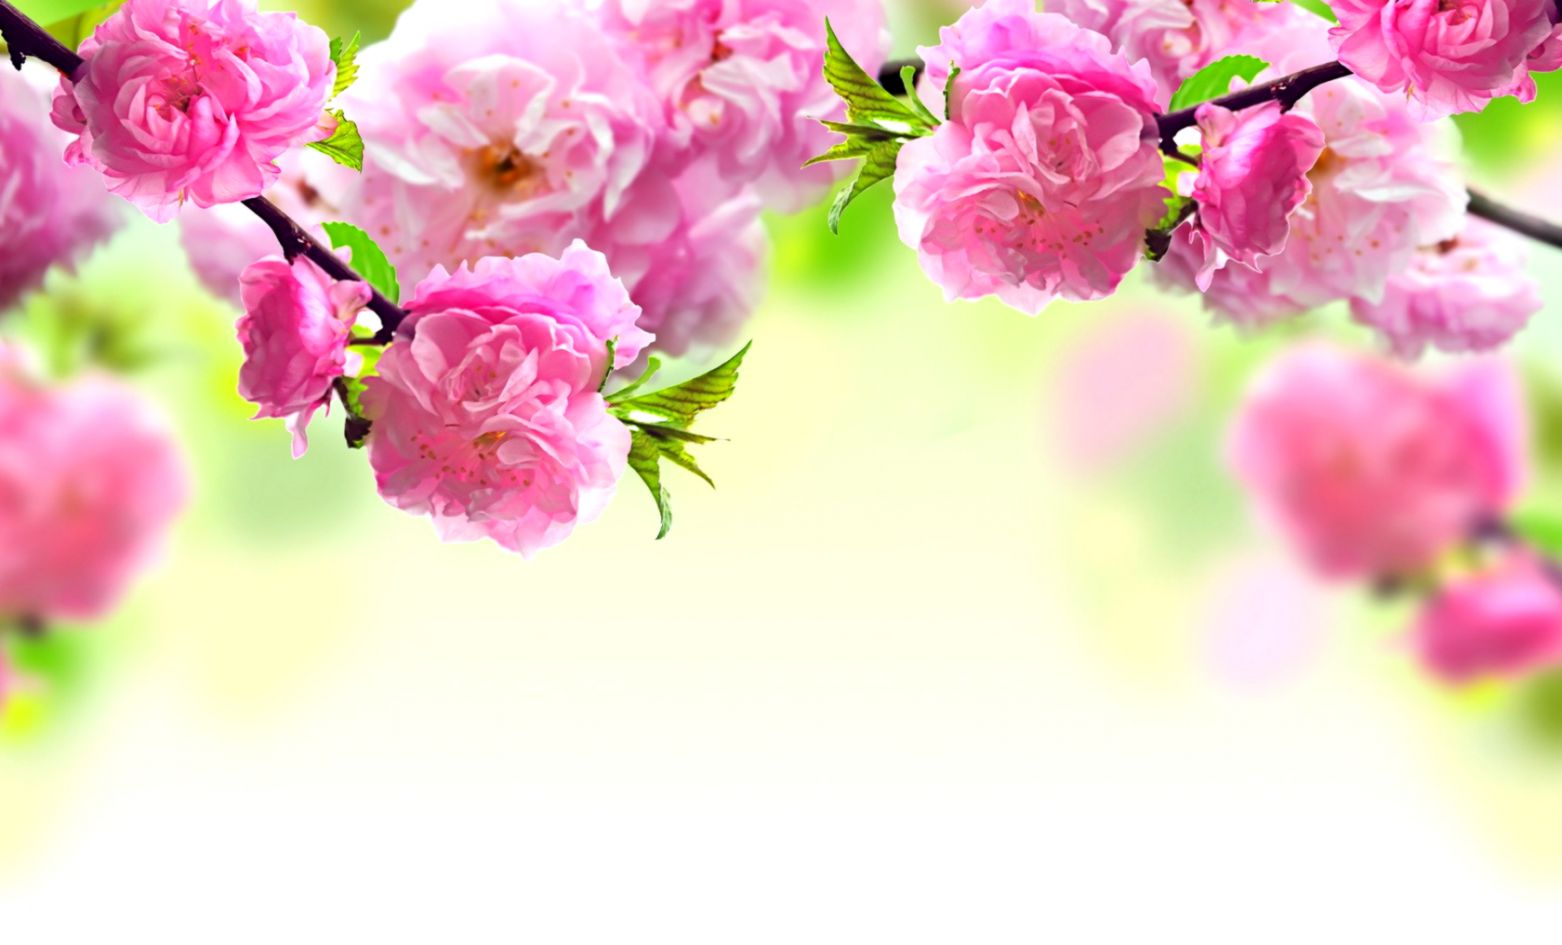 Branches Flowers Pink Hd Wallpaper Soft Wallpapers